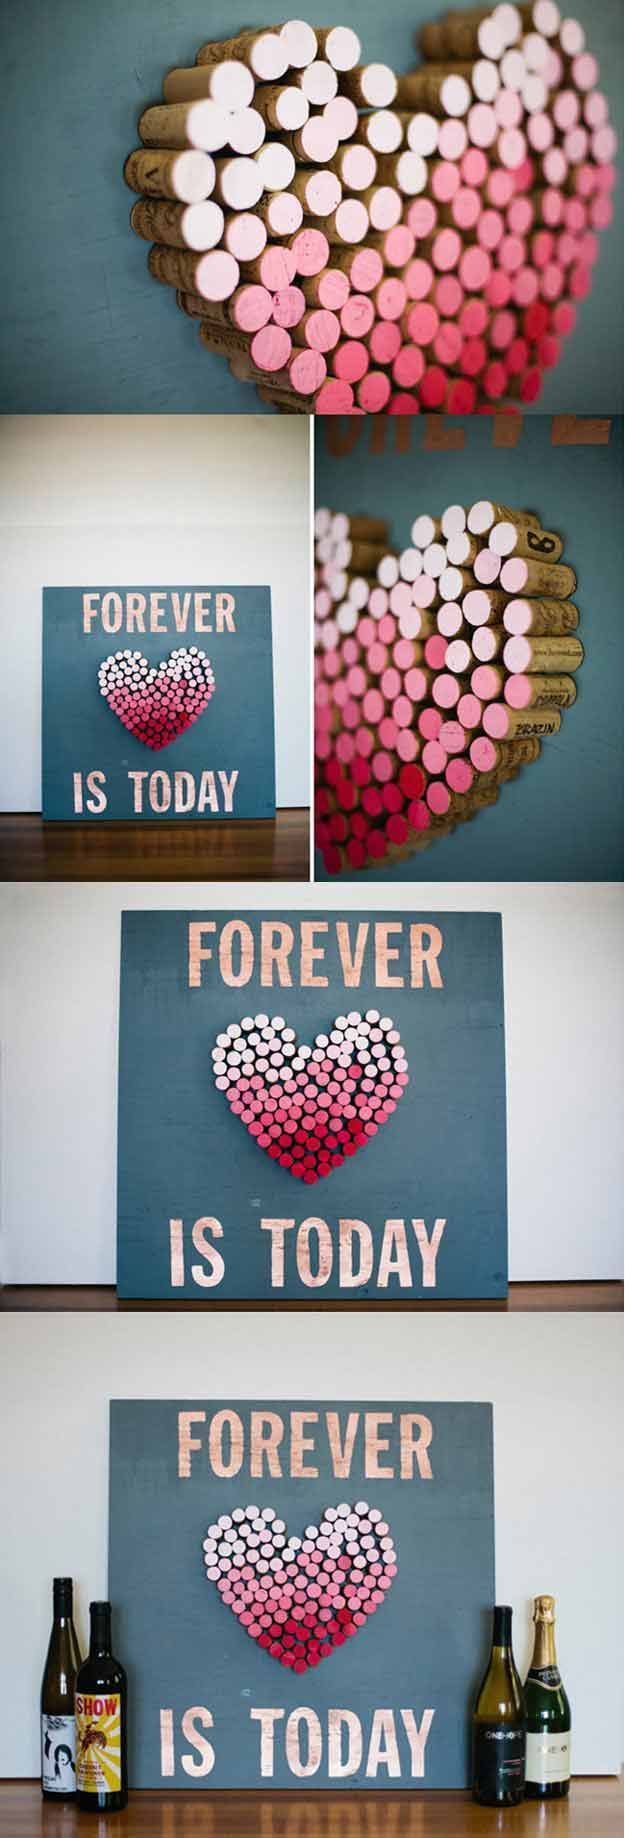 Cute DIY Room Decor Ideas for Teens - DIY Bedroom Projects for Teenagers - Ombre Wine Cork Craft Idea